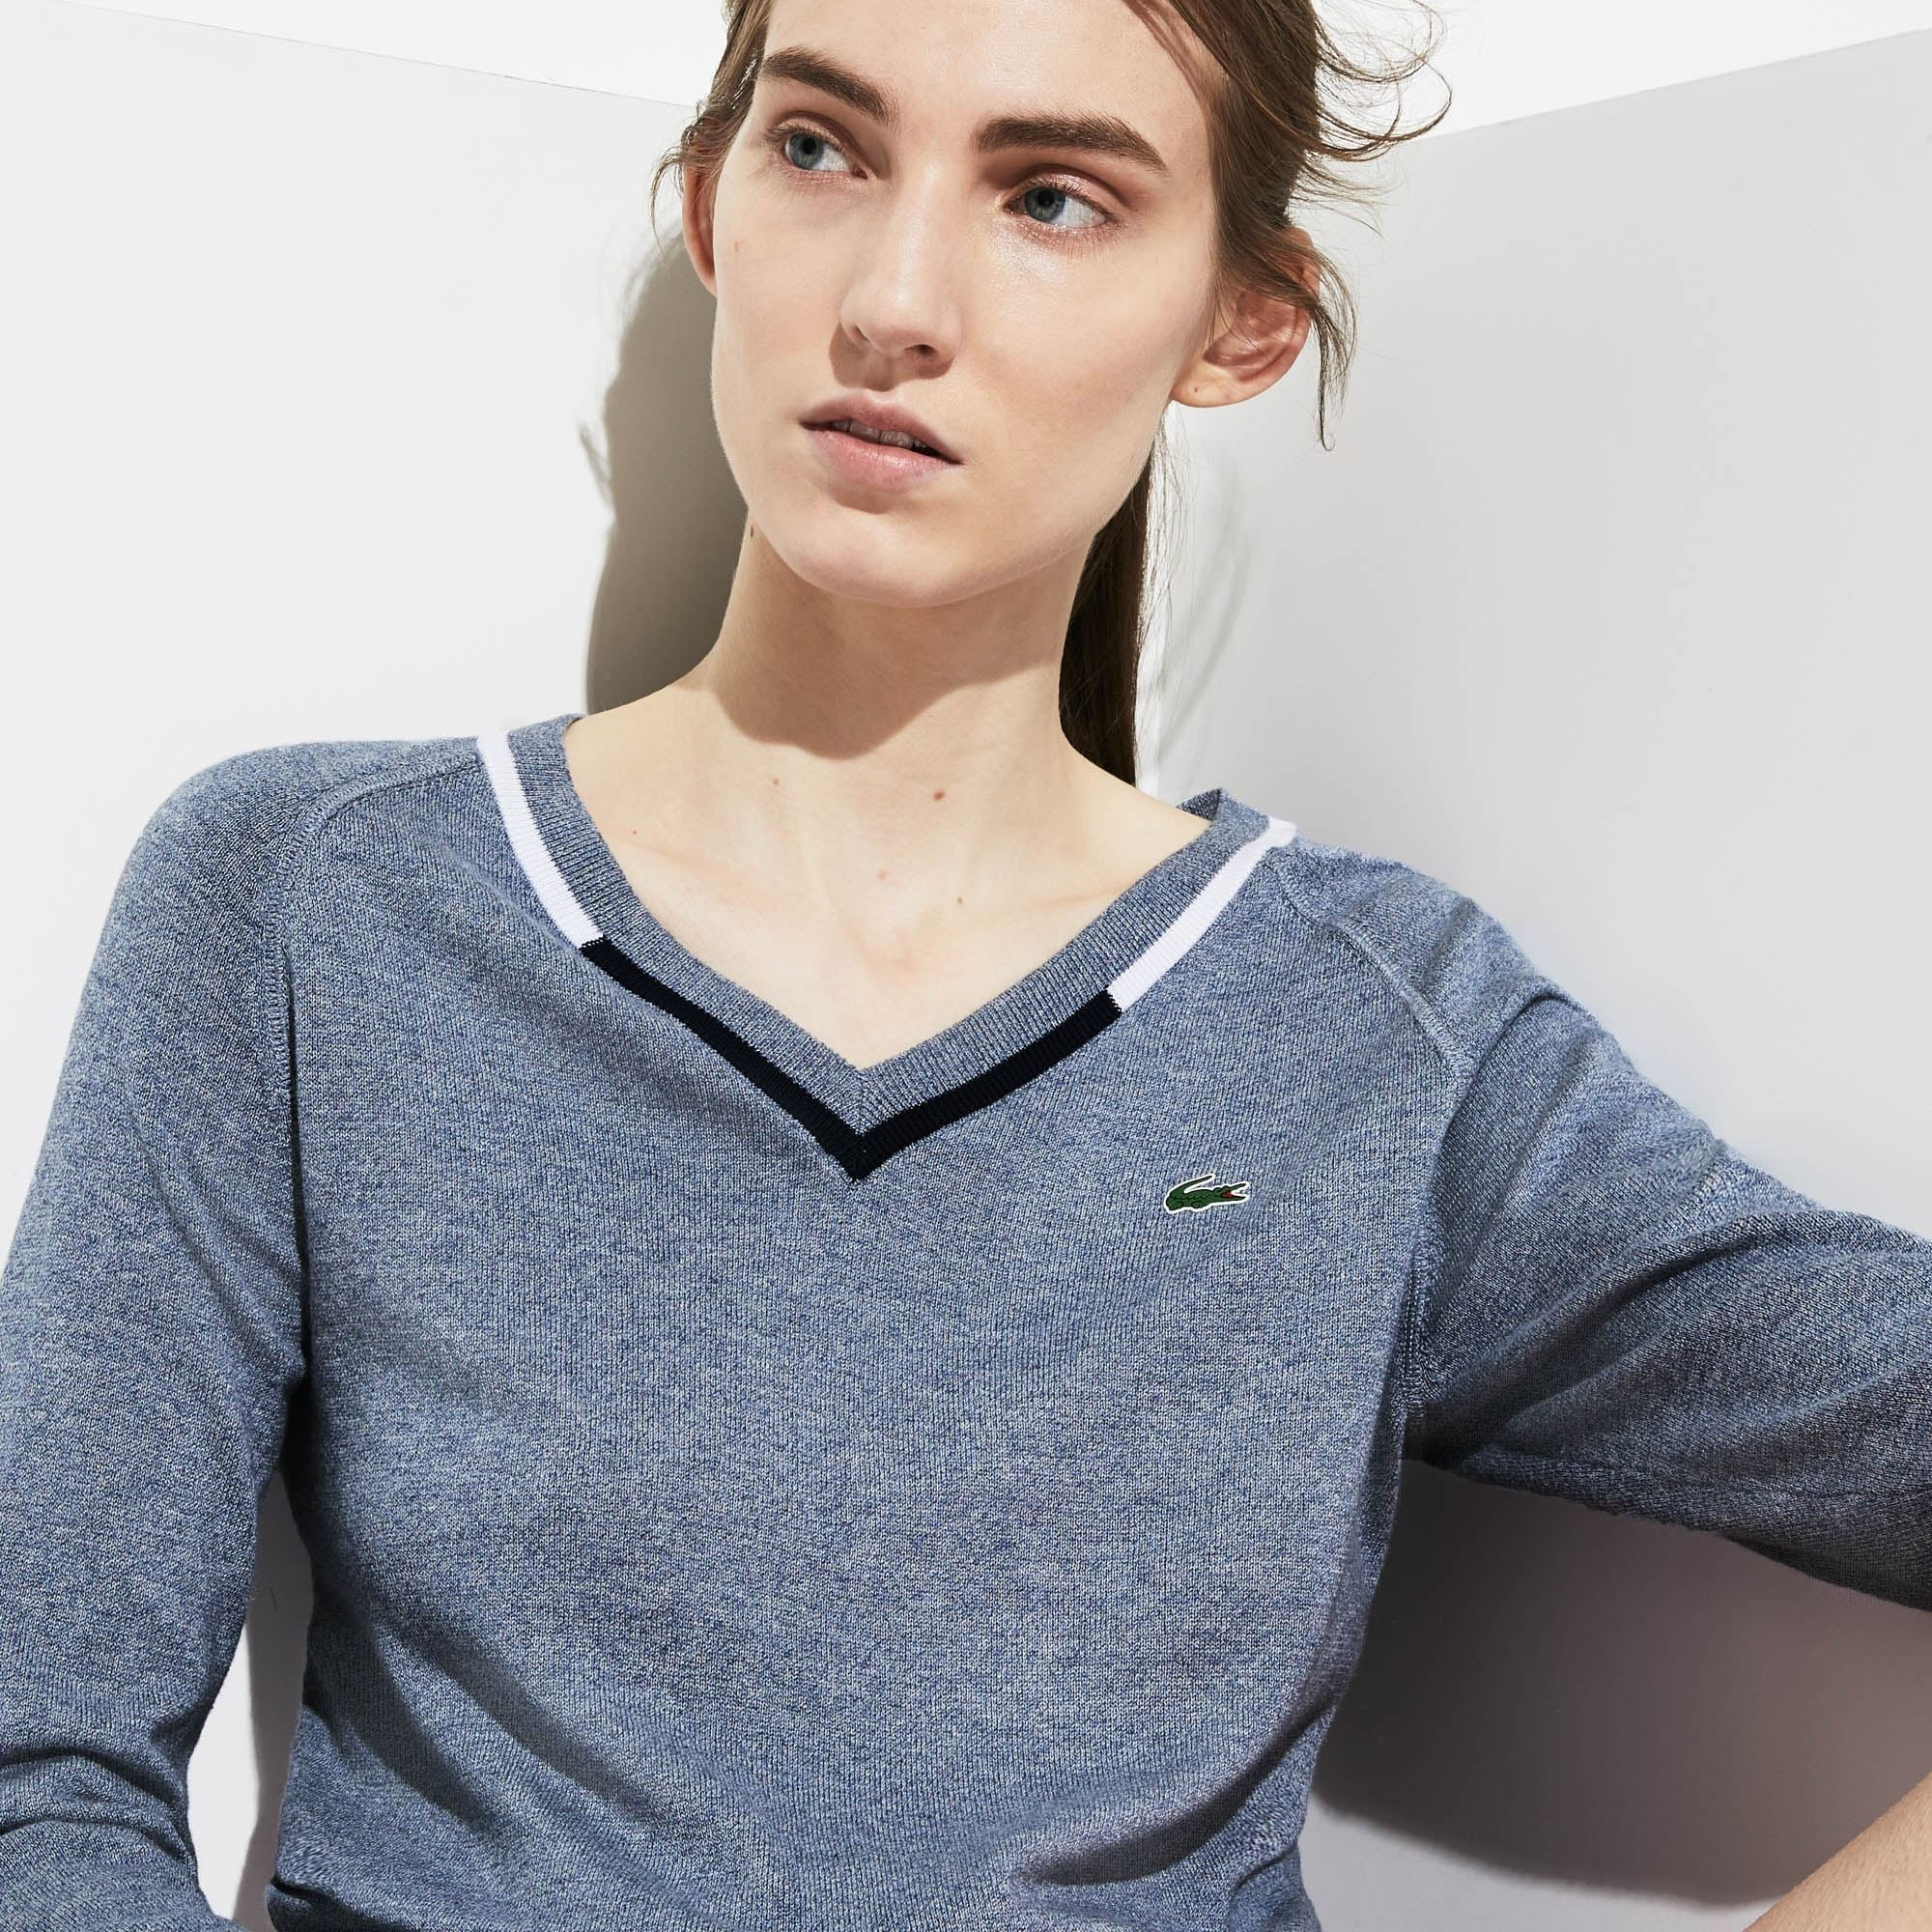 Women's Lacoste SPORT V-Neck Thermoregulating Knit Golf Sweater